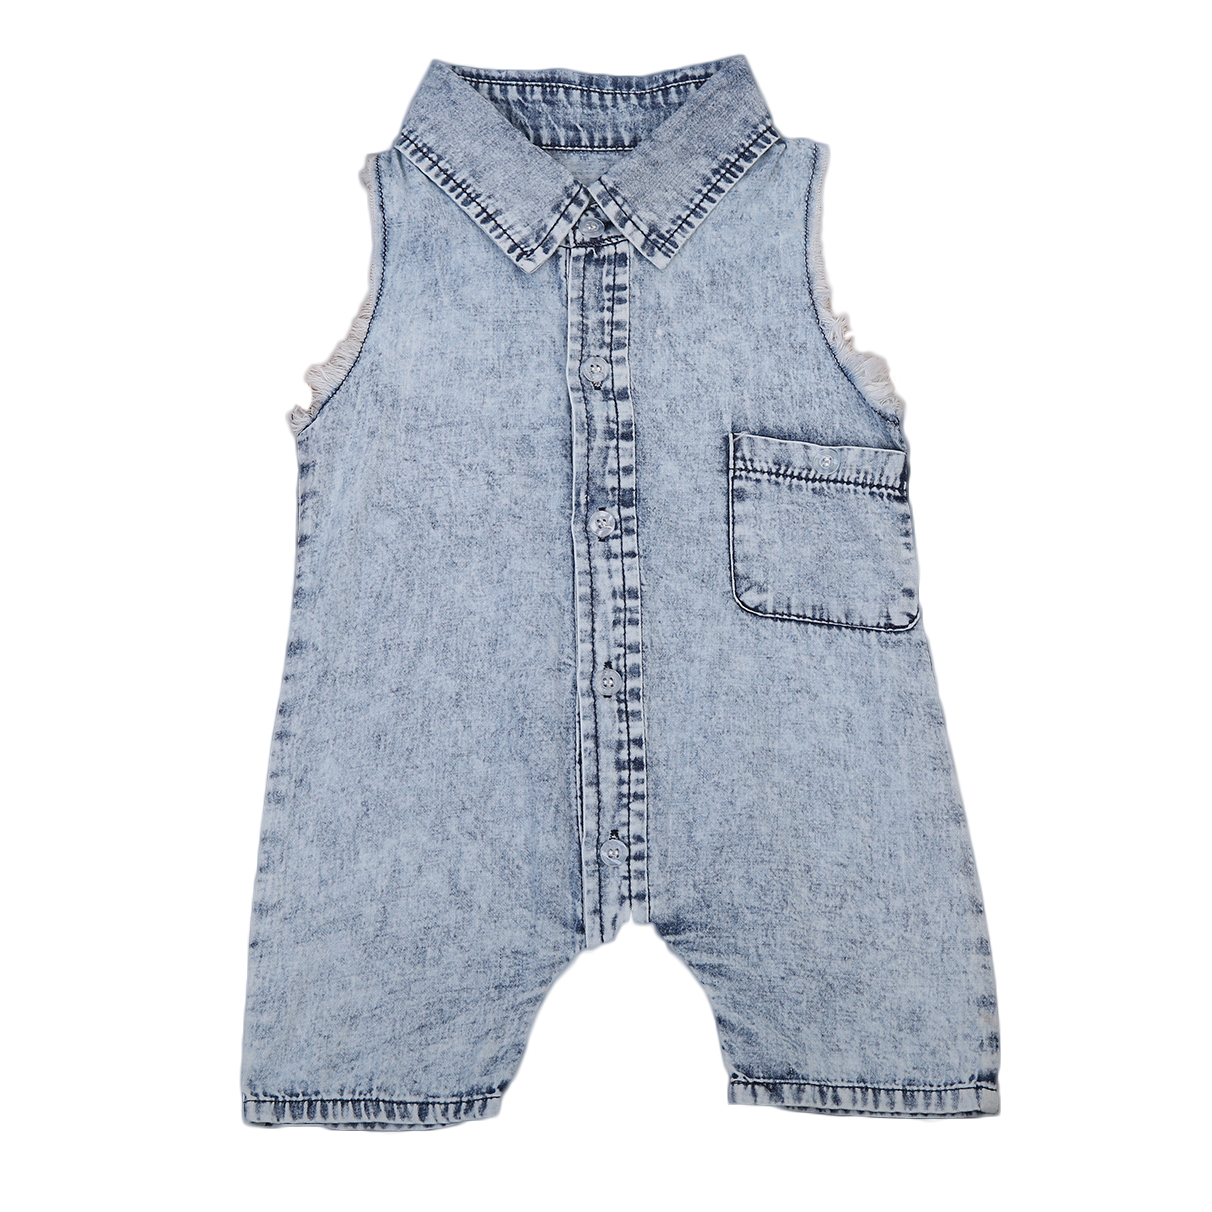 Cute Newborn Toddler Infant Baby Girl Sleeveless Denim Romper Jumpsuit Outfit Sunsuit Clothes cute newborn baby girl clothes little princess striped bow romper sunsuit infant bebes jumpsuit children clothes